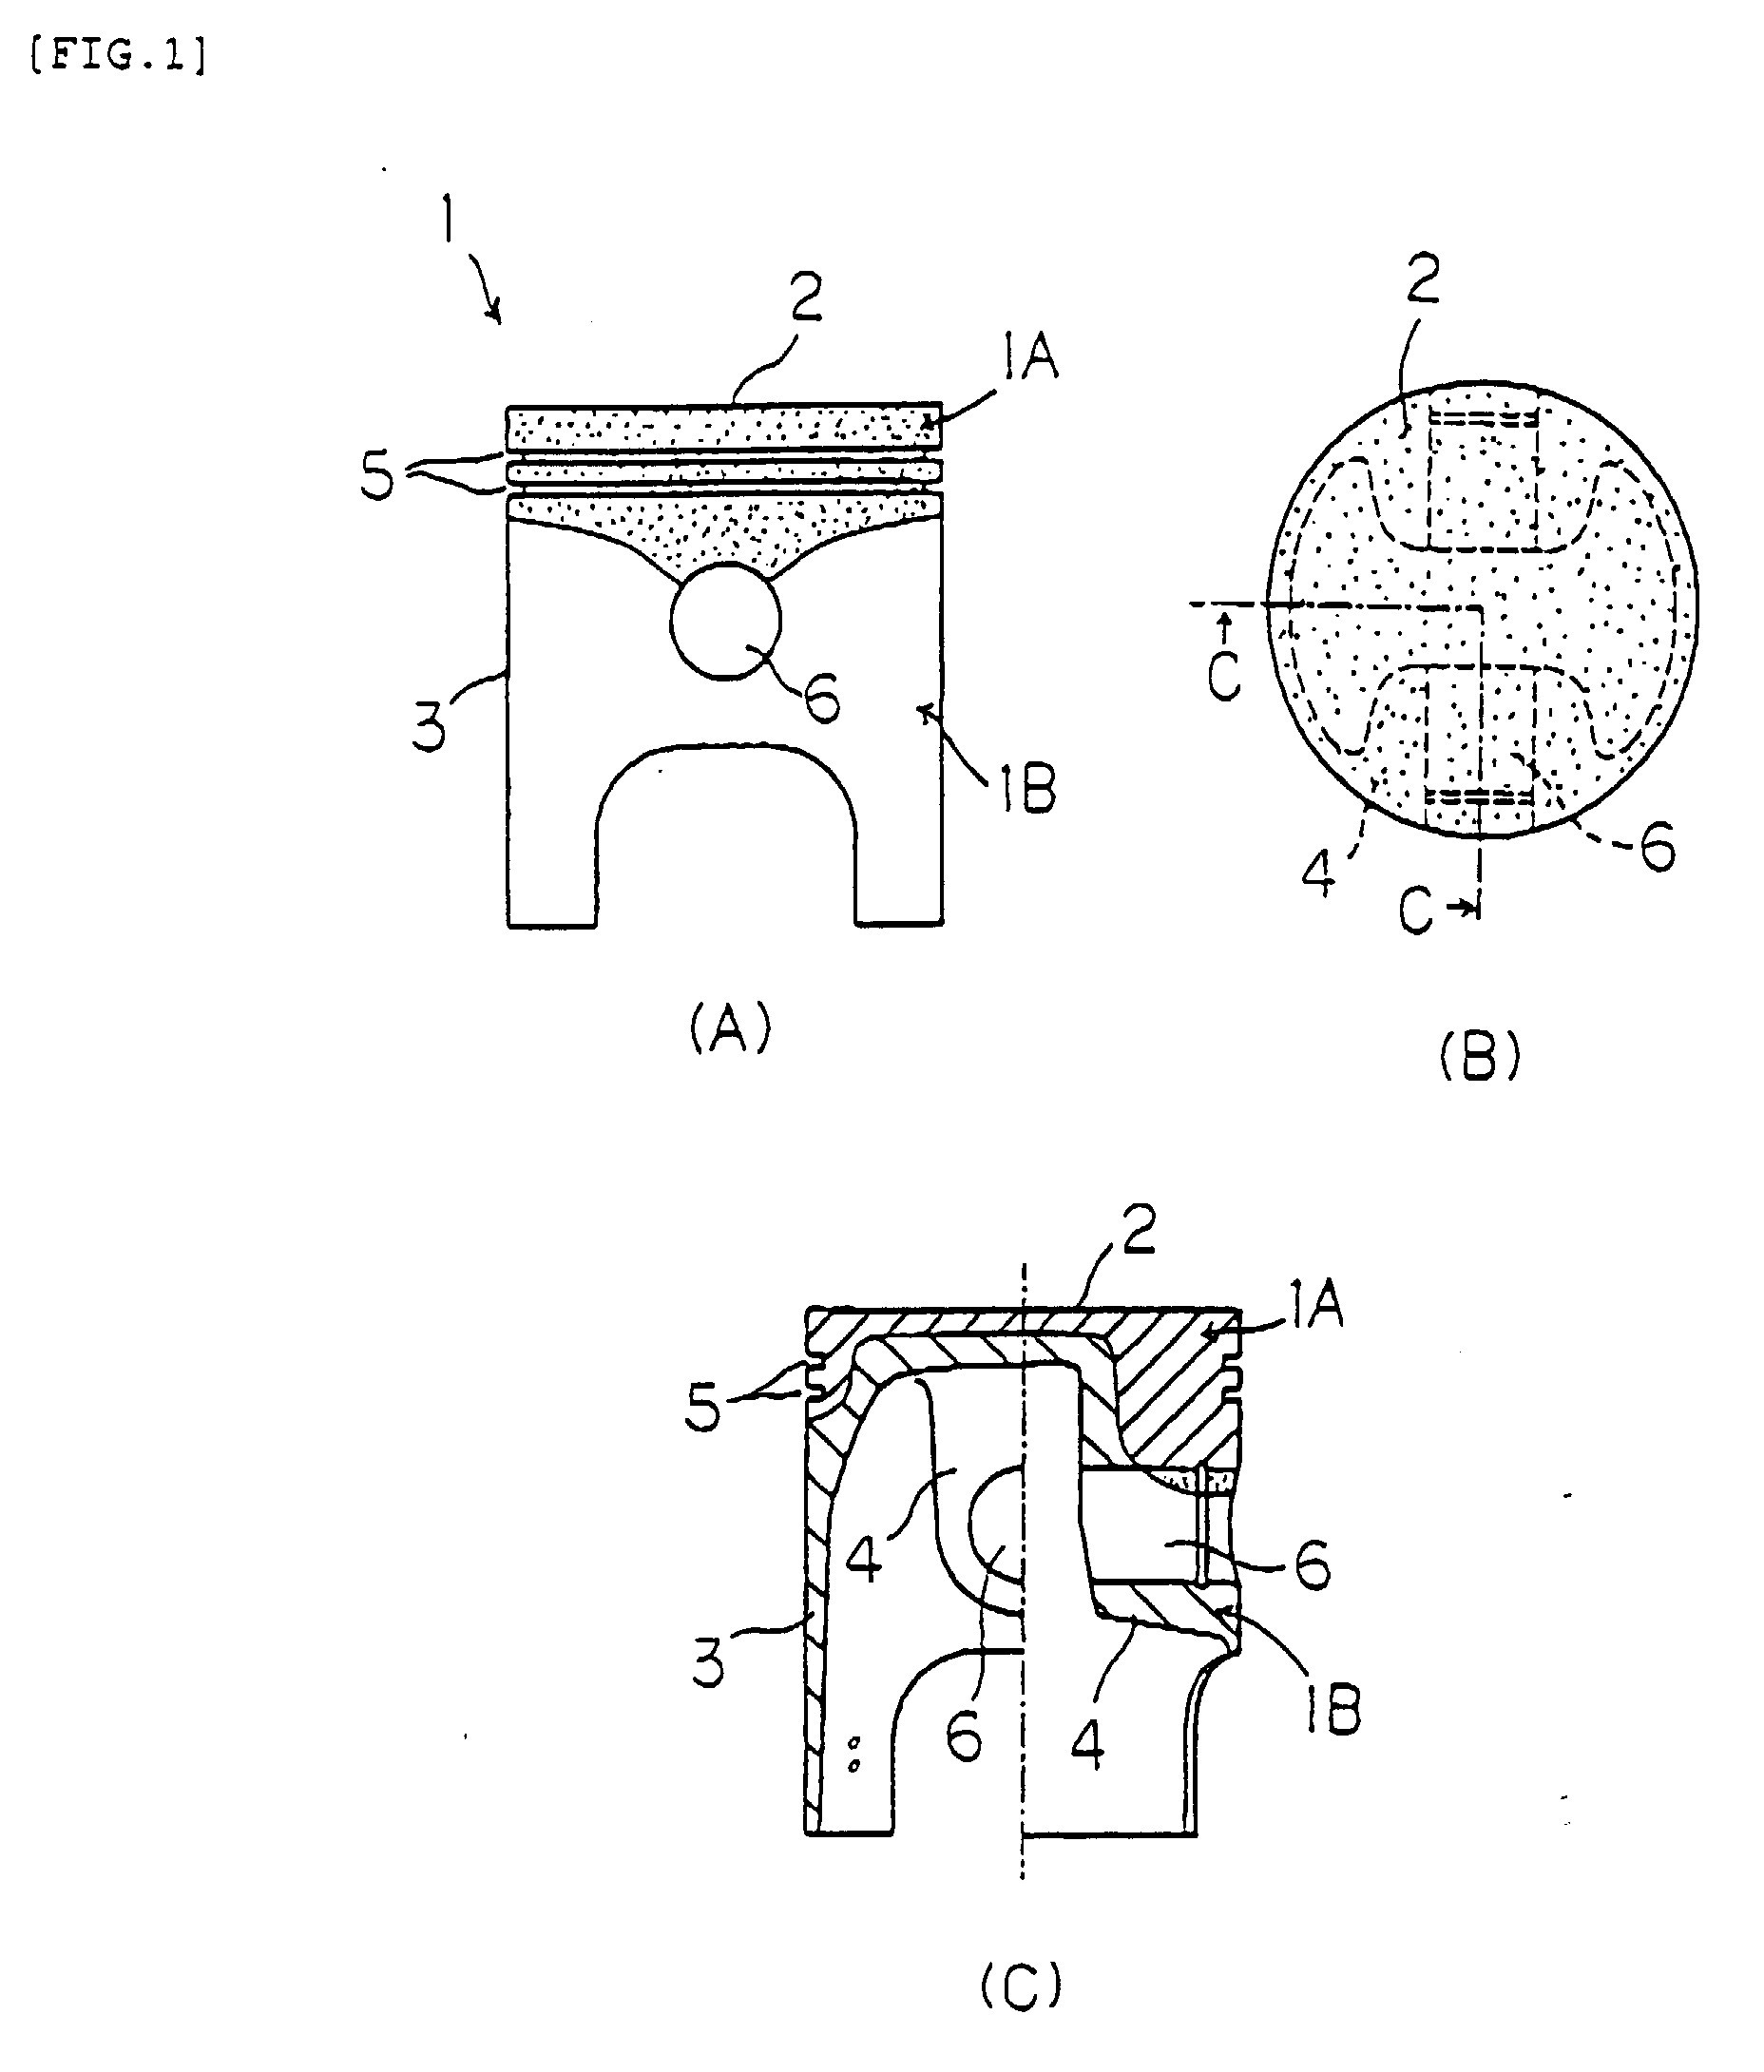 Diagram Of An Internal Combustion Engine Internal Bustion Engine Diagram Patent Ep A1 Piston for An Of Diagram Of An Internal Combustion Engine